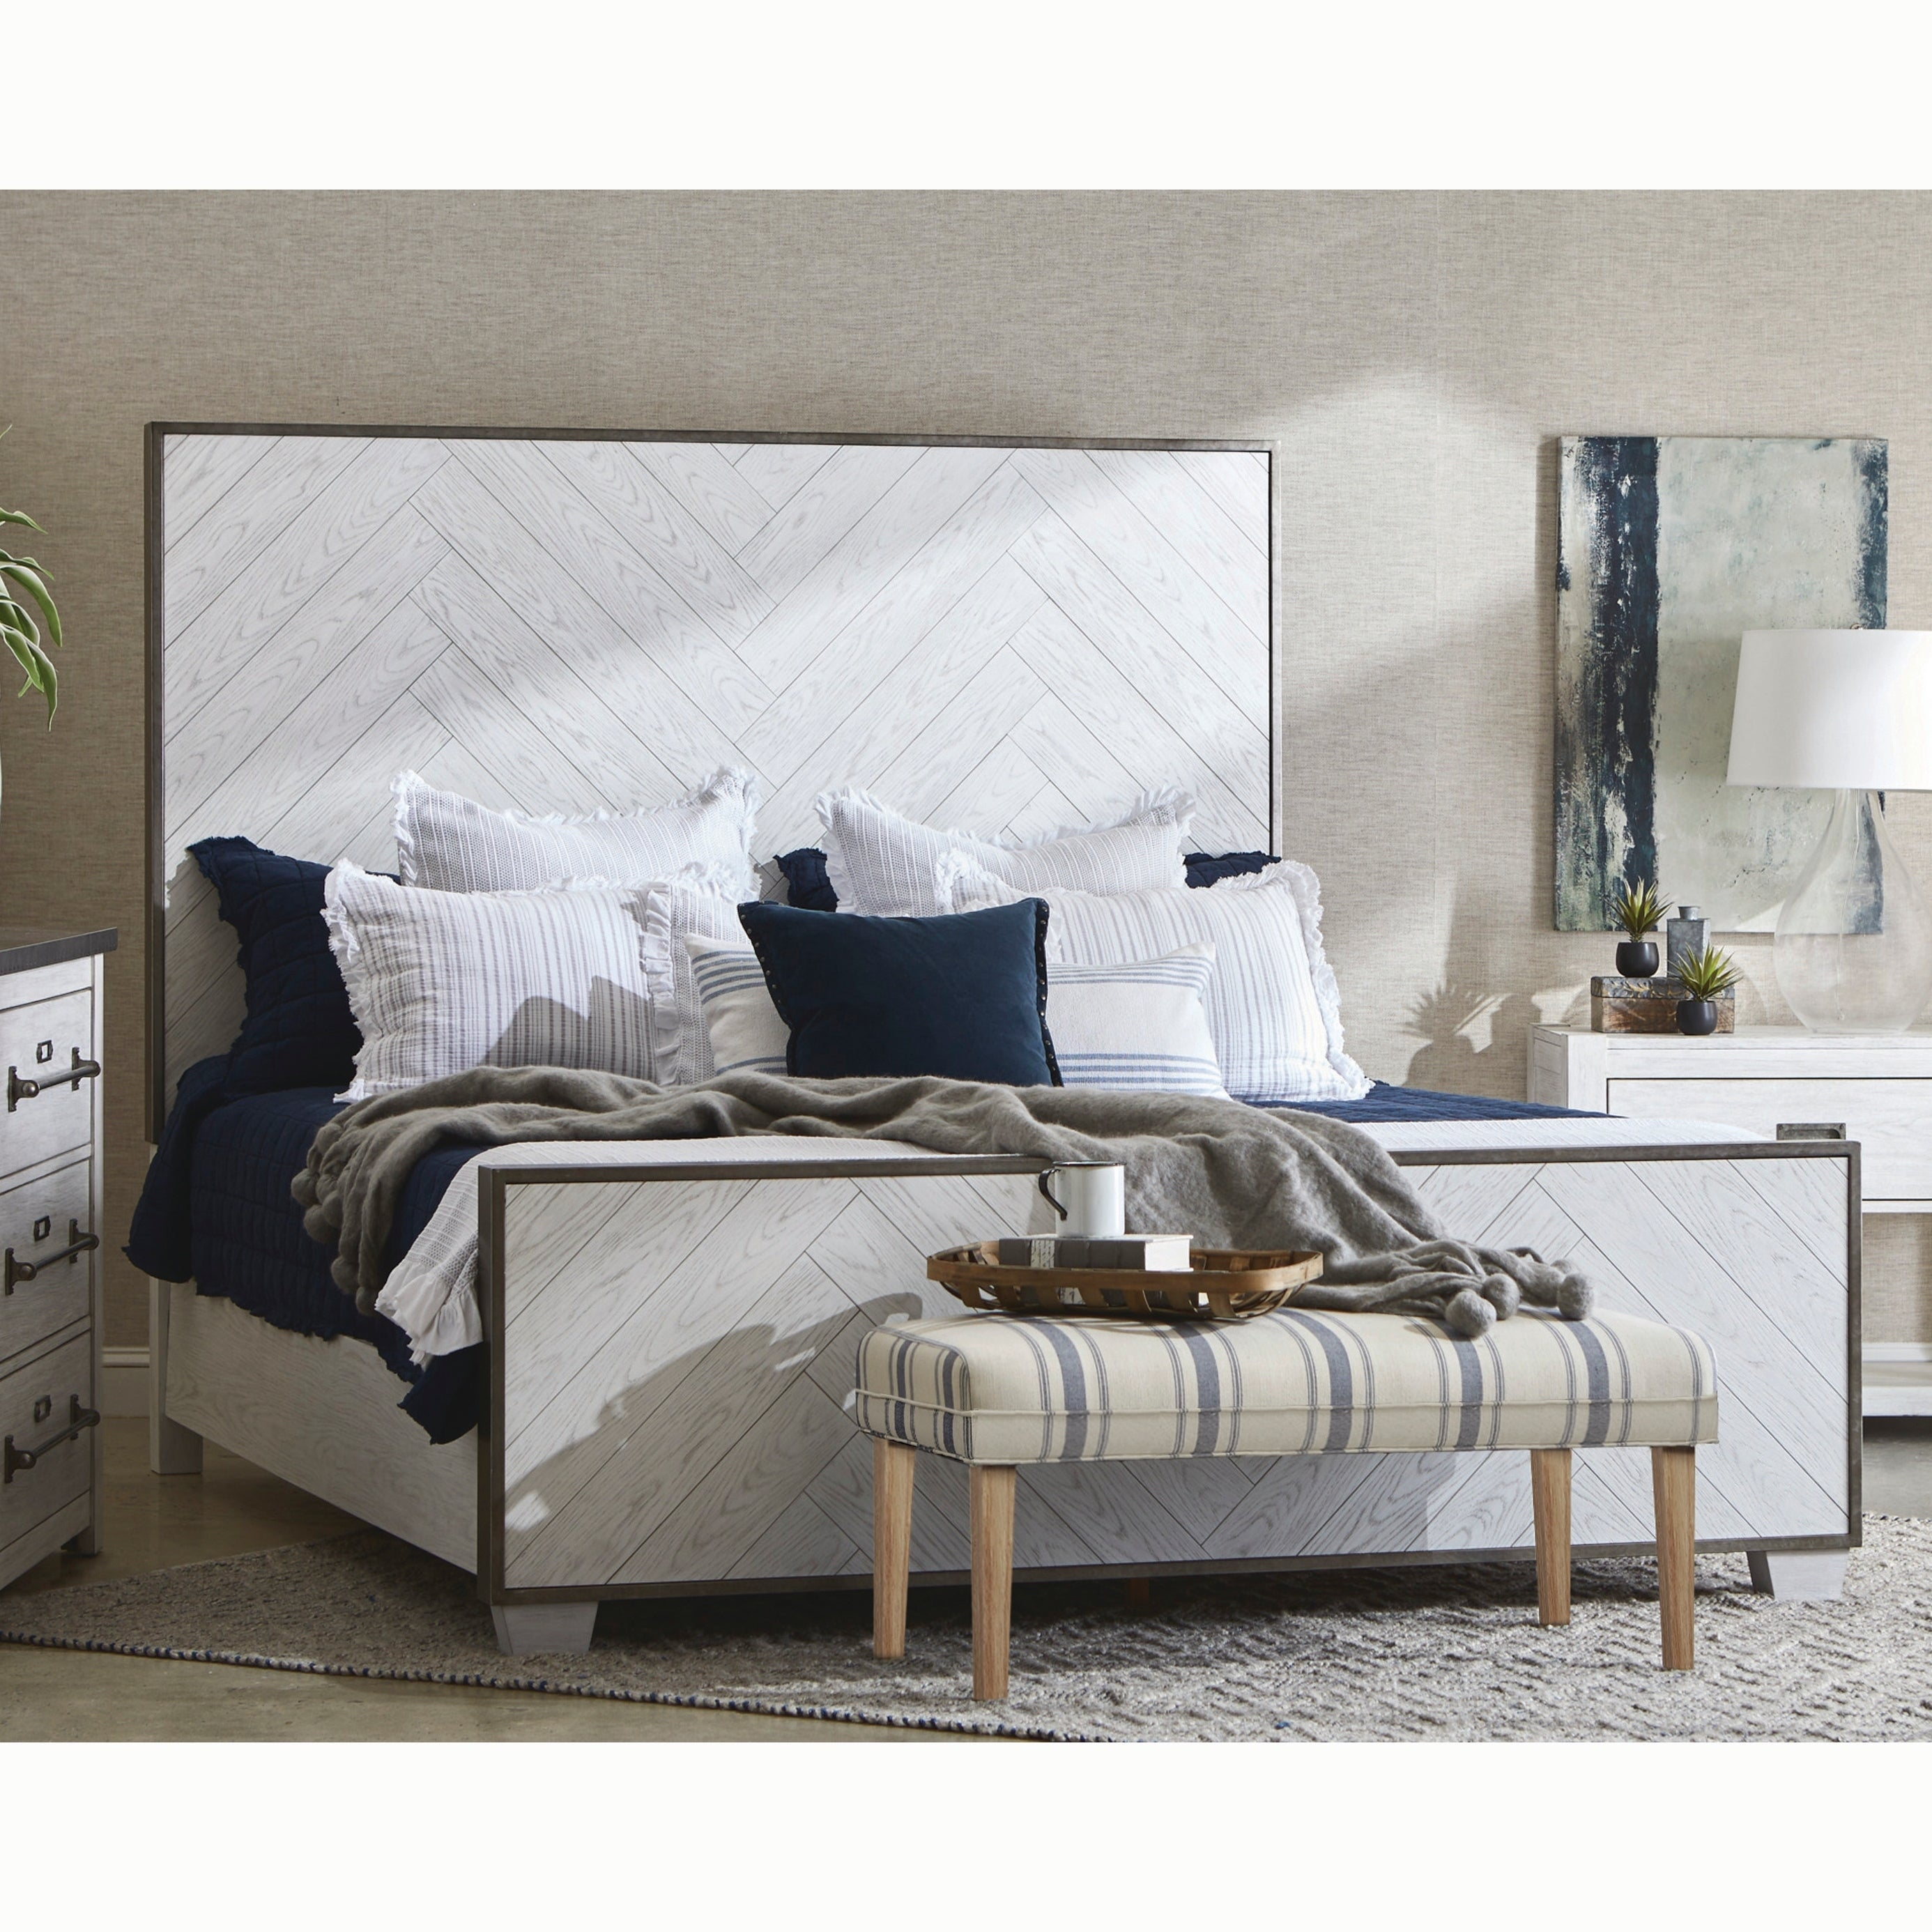 Swids Modern Farmhouse Vintage White Bed With Metal Frame Overstock 28067704